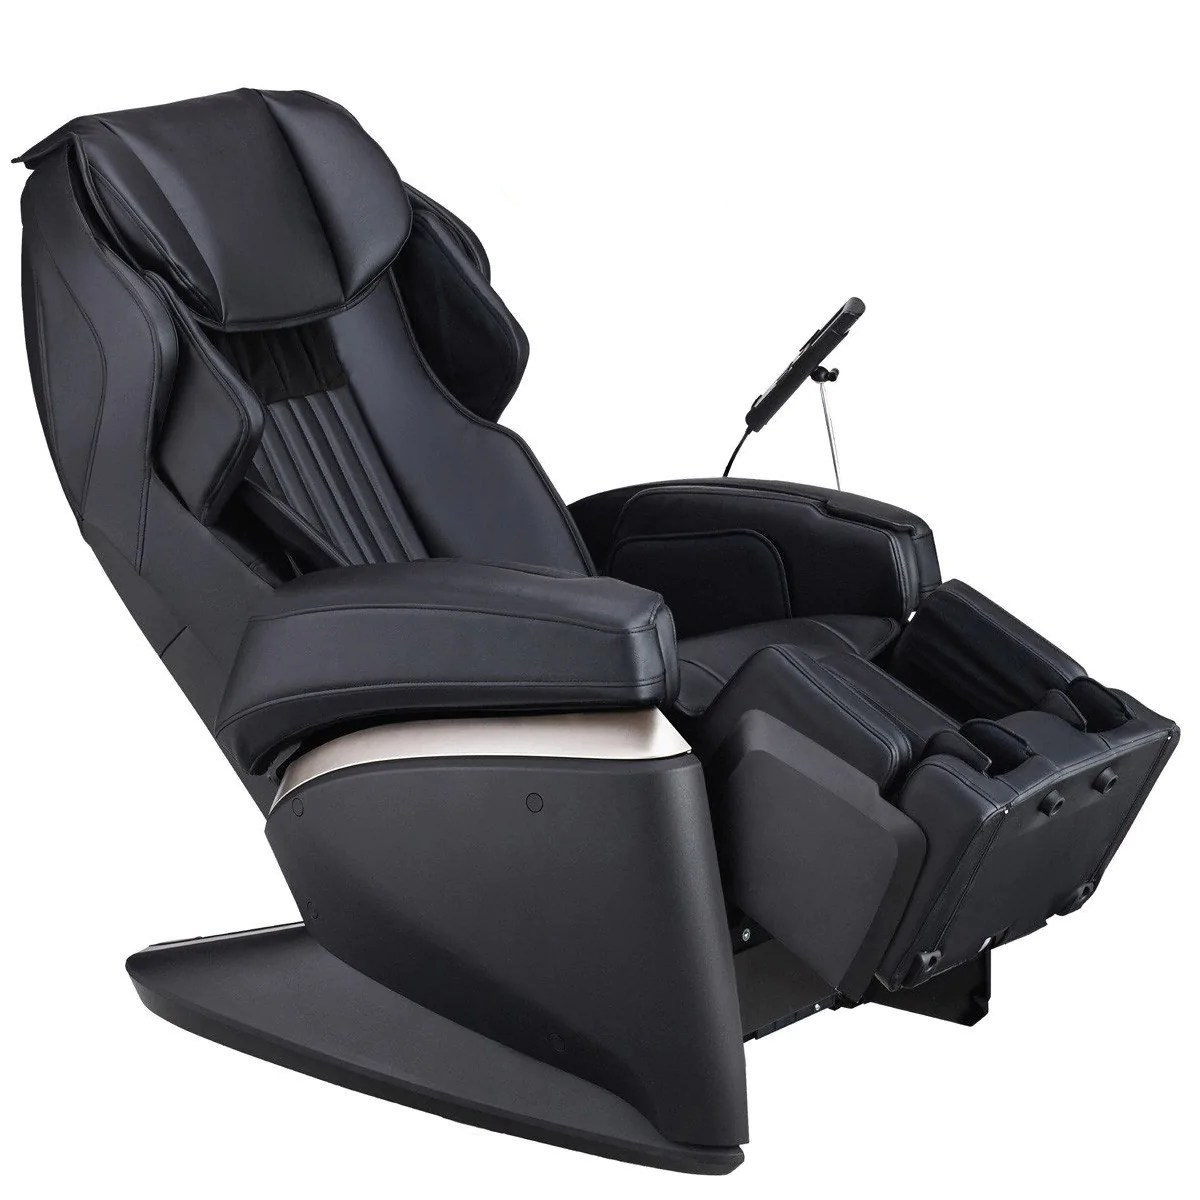 Inada Sogno Dreamwave Massage Chair Inada Sogno Massage Chair